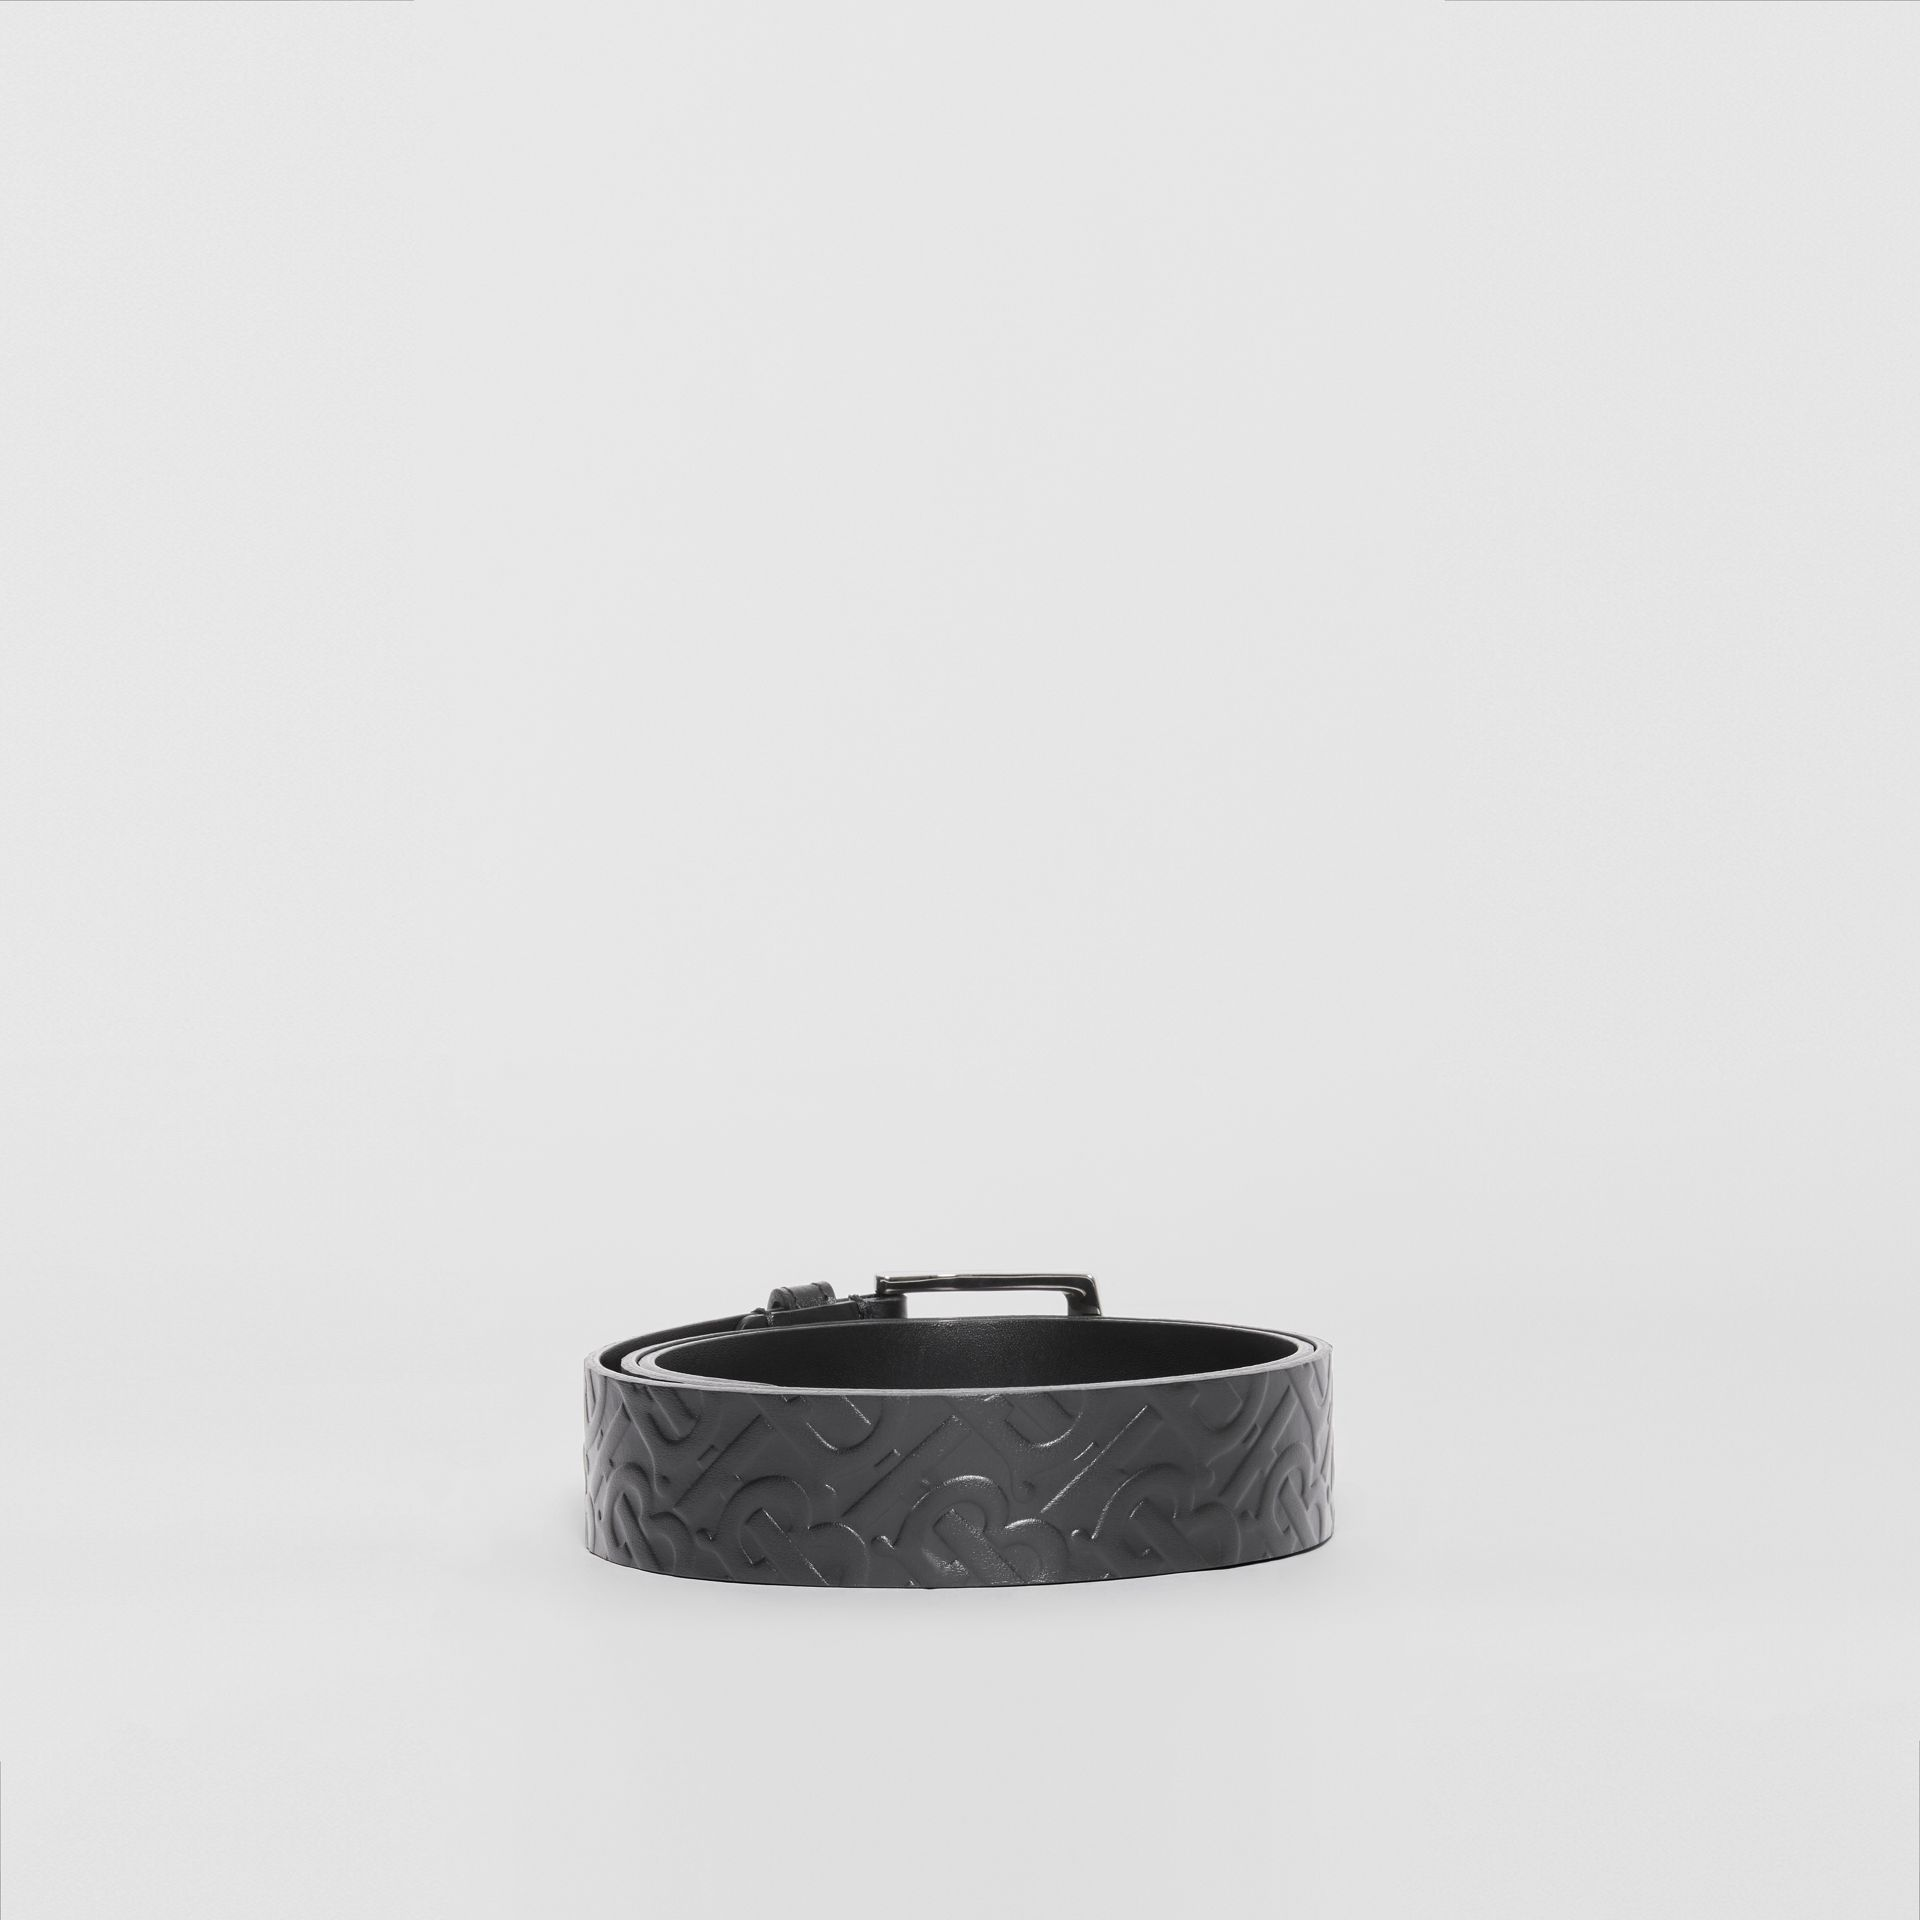 Monogram Leather Belt in Black - Men | Burberry - gallery image 4